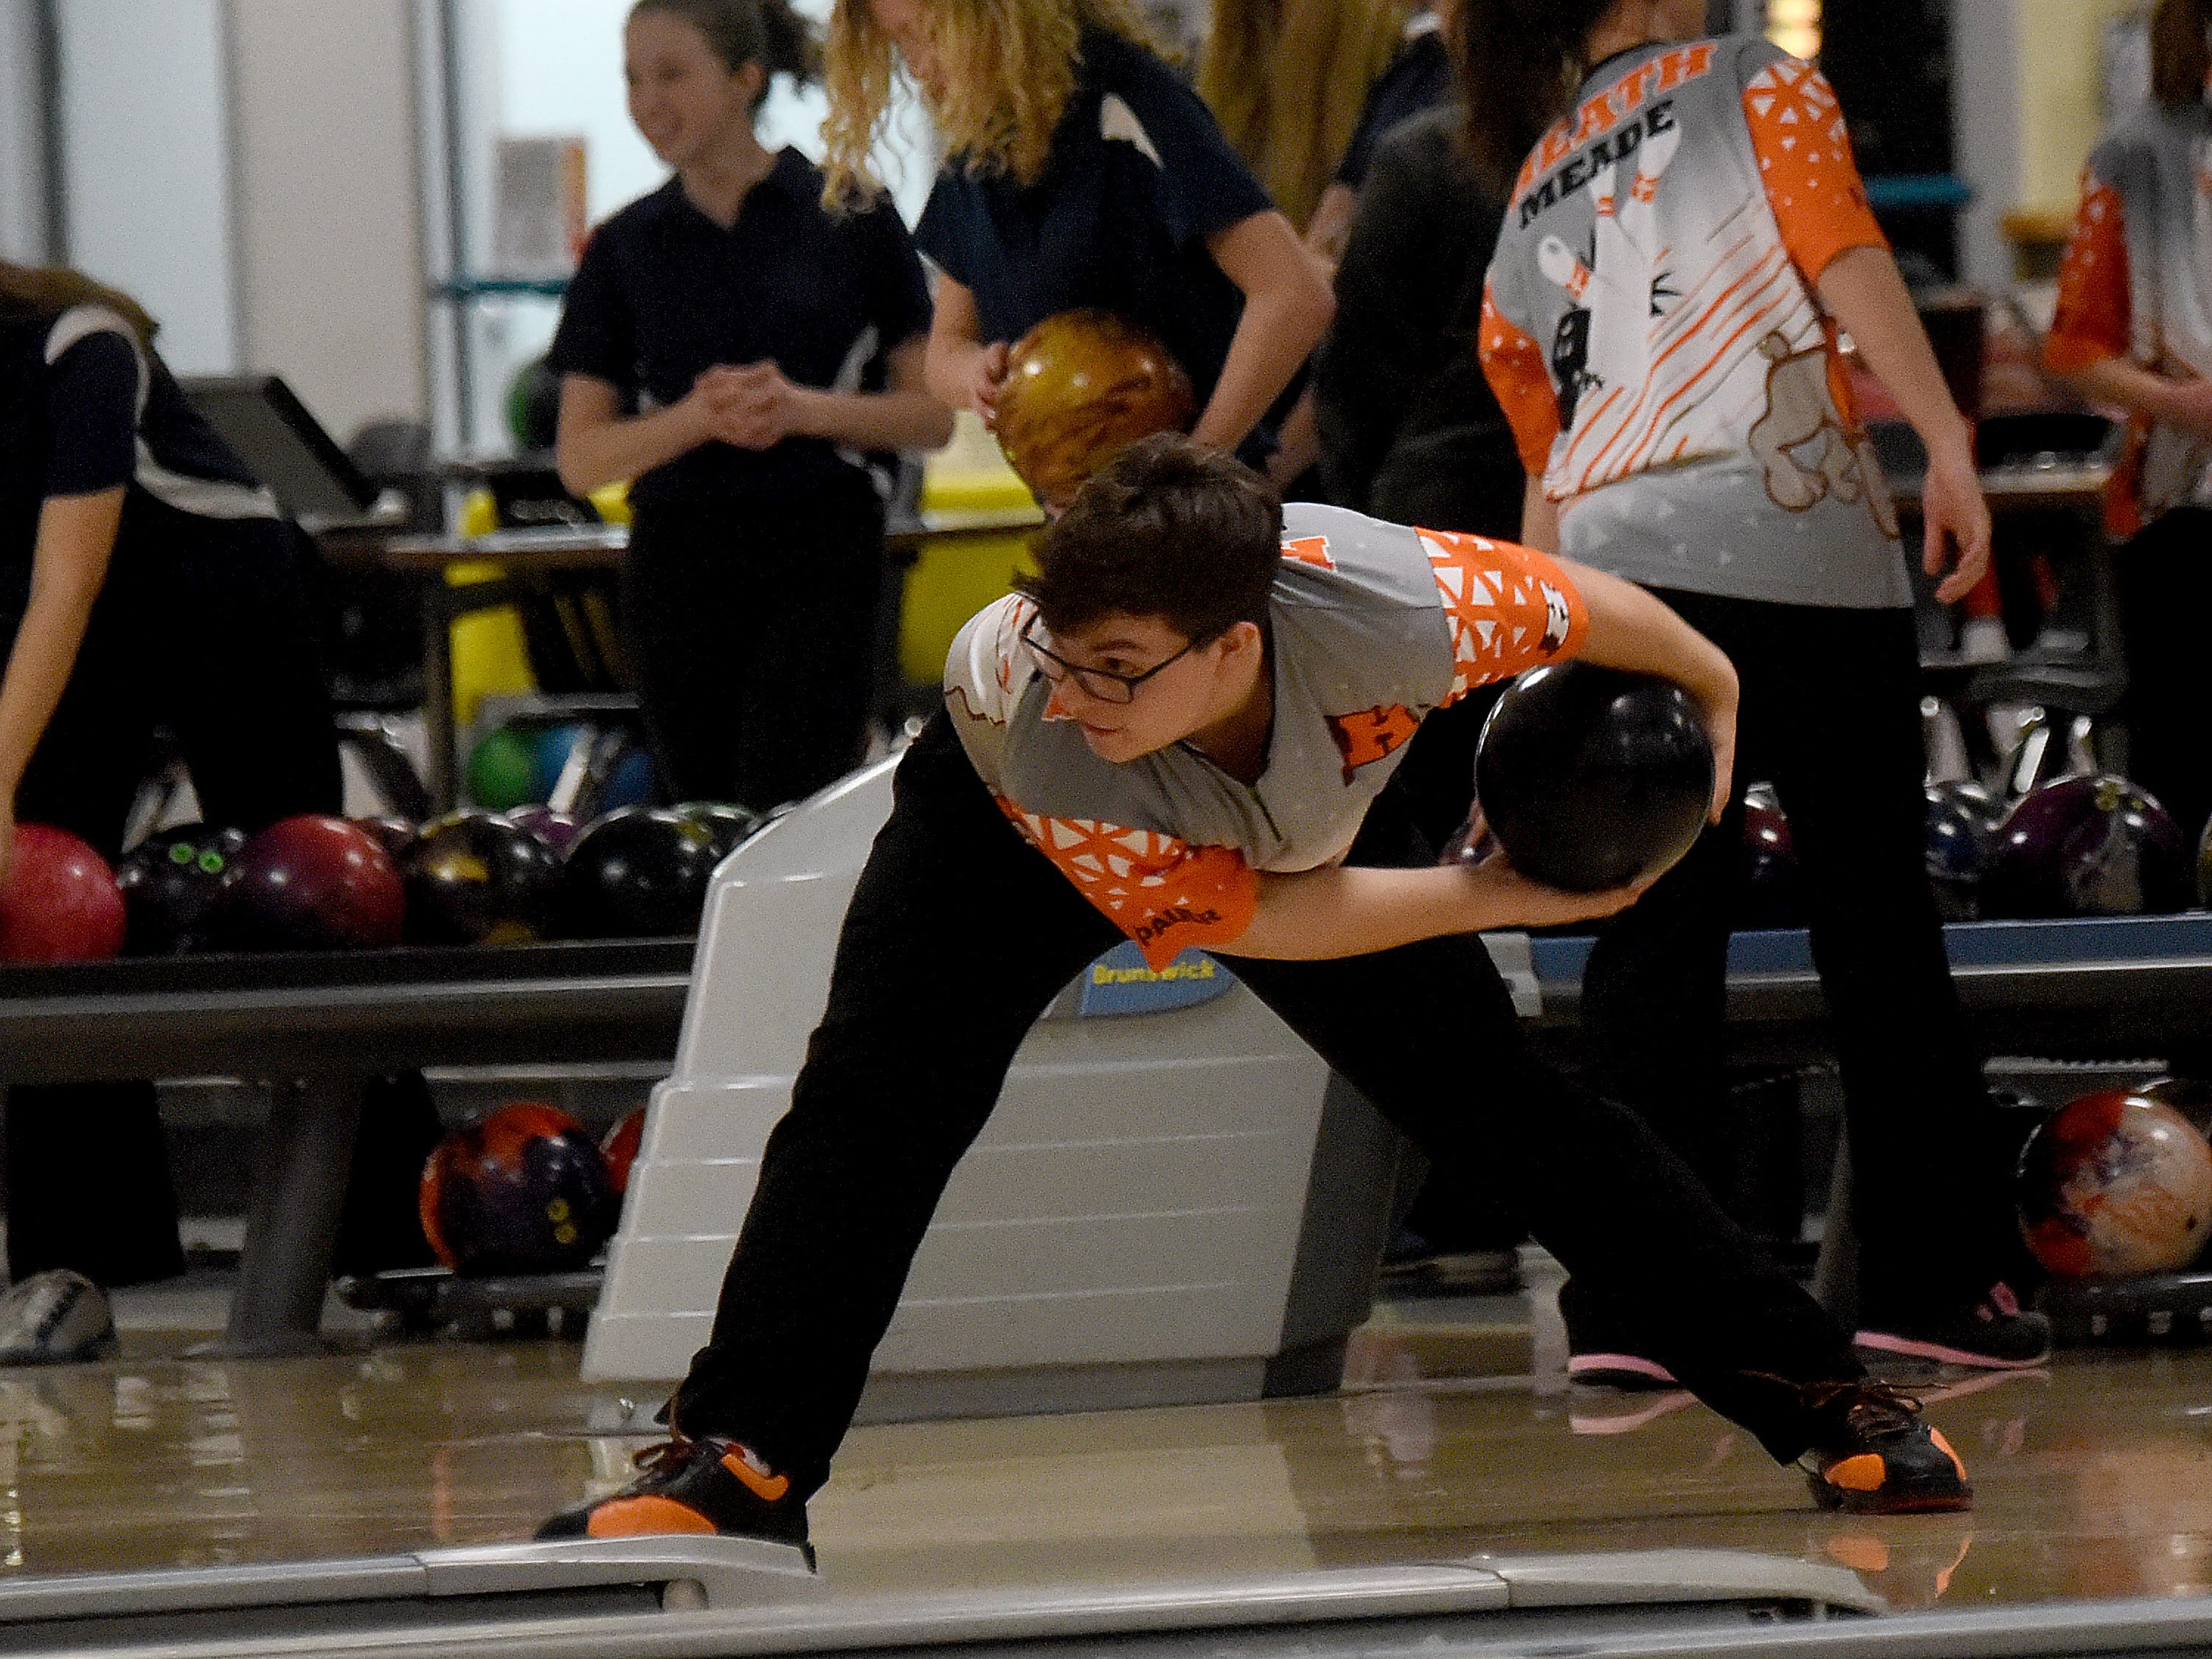 Heath junior Konnor Goodwin bowls with the Bulldogs' bowling team against Granville in an LCL match on Thursday, Jan. 17, 2019, at Park Lanes in Heath.